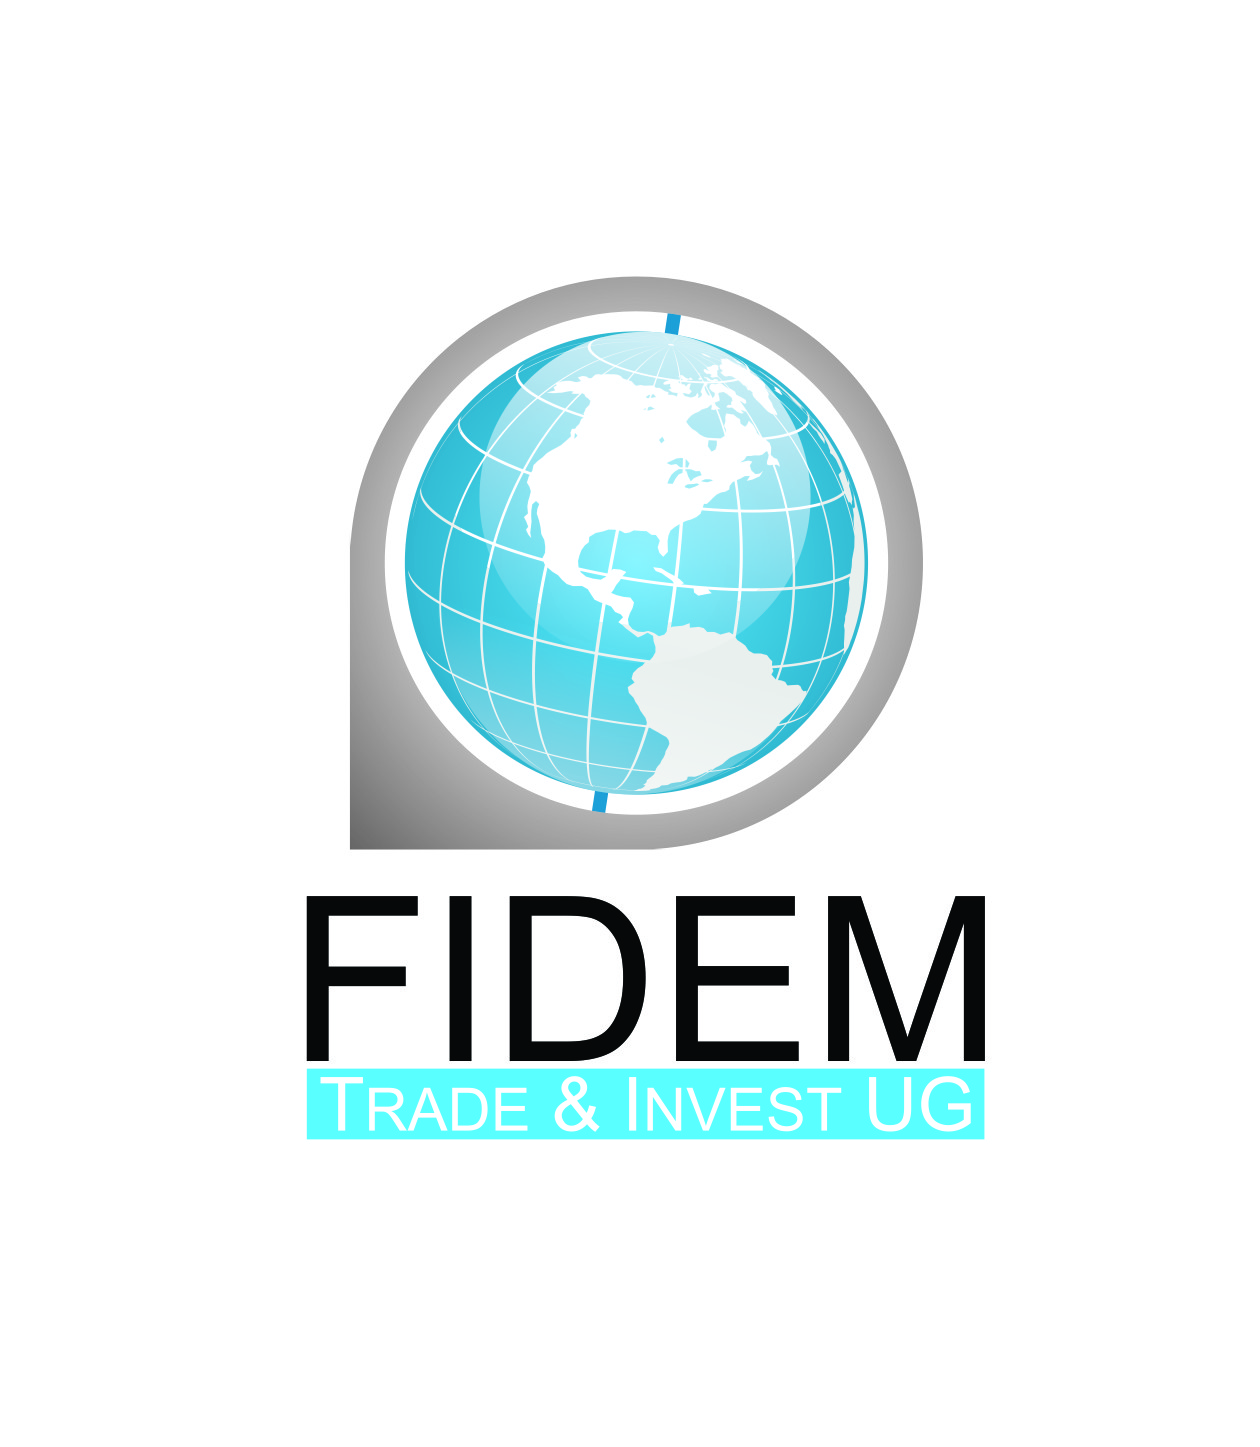 Logo Design by Crispin Jr Vasquez - Entry No. 481 in the Logo Design Contest Professional Logo Design for FIDEM Trade & Invest UG.